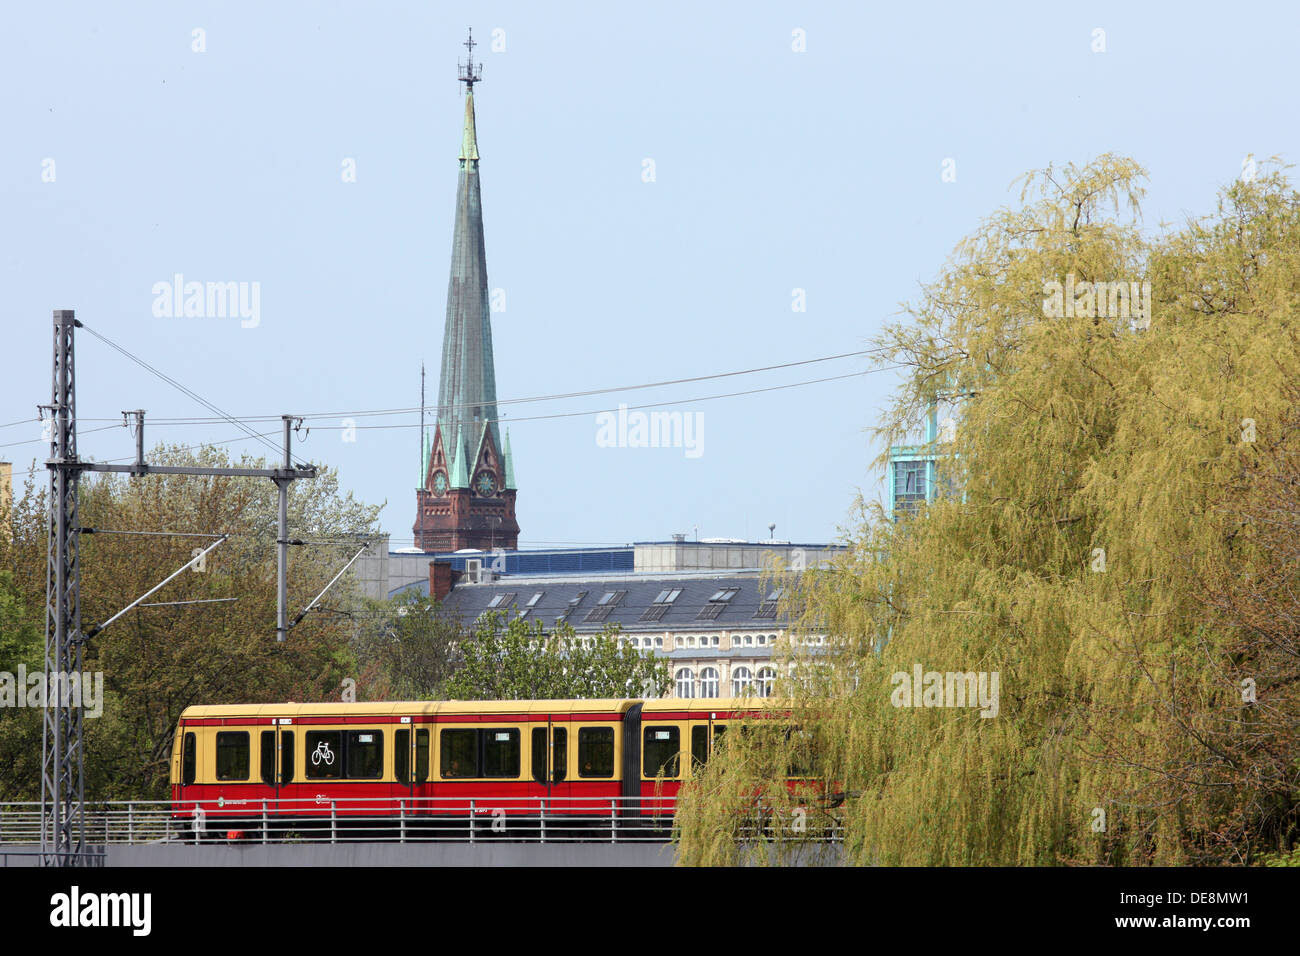 Berlin, Germany, S -Bahn train on the rail line - Stock Image